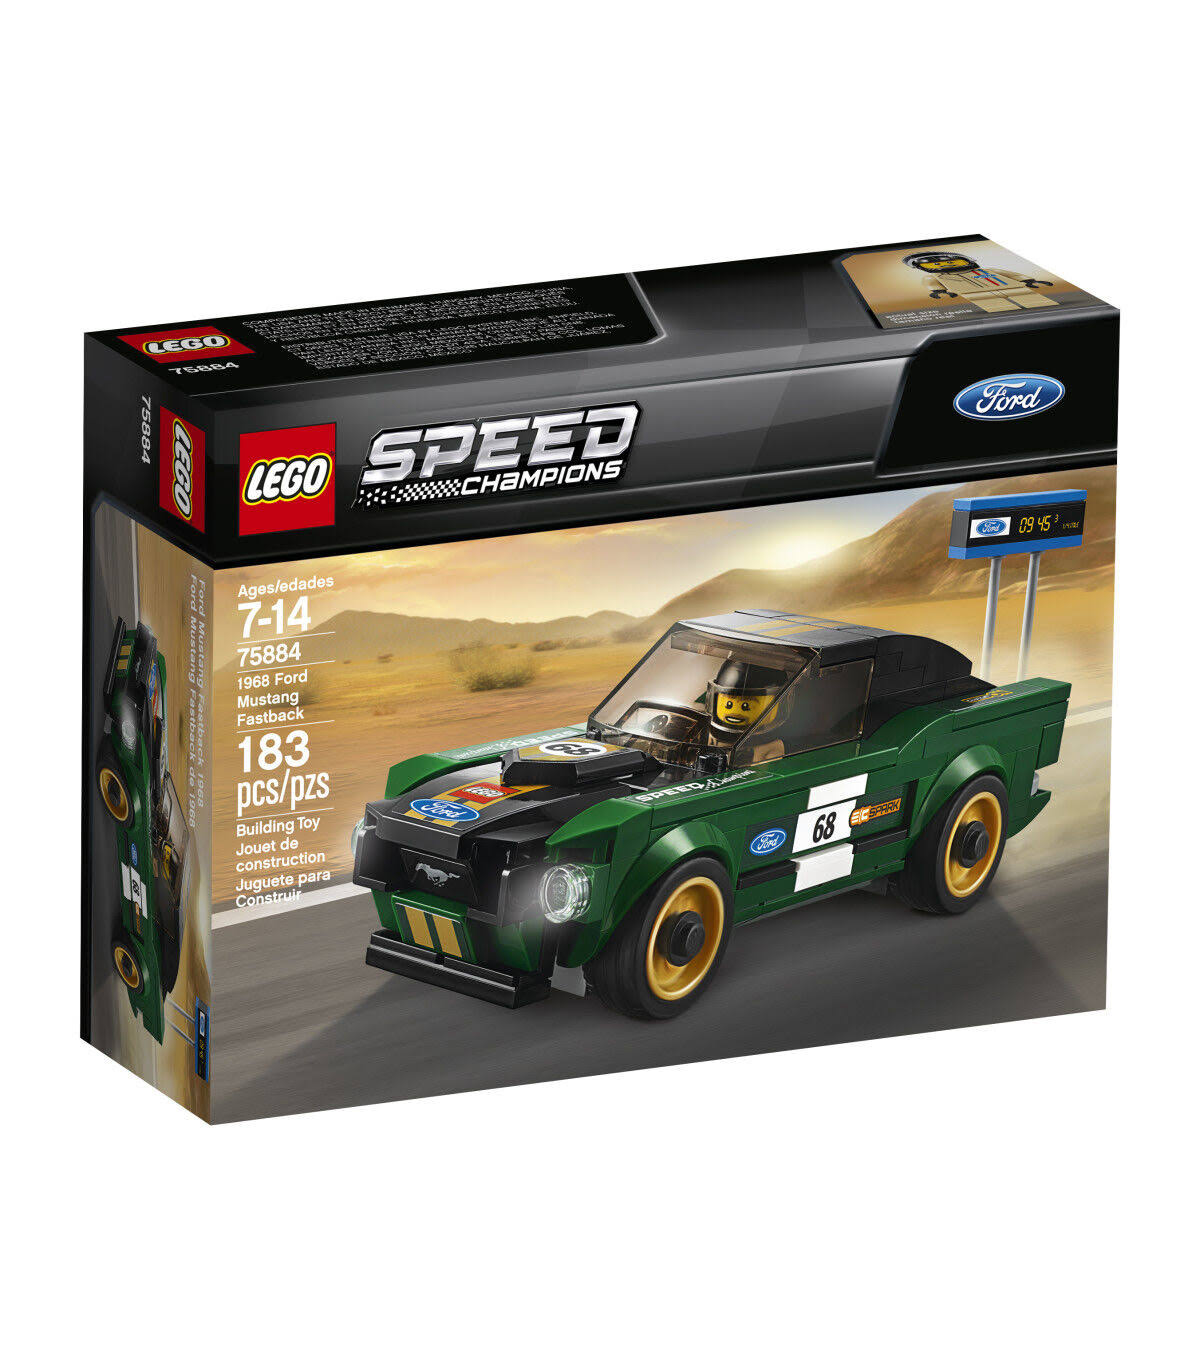 Lego Speed Champions 75884 1968ford Mustang Fastback Model Car Toy